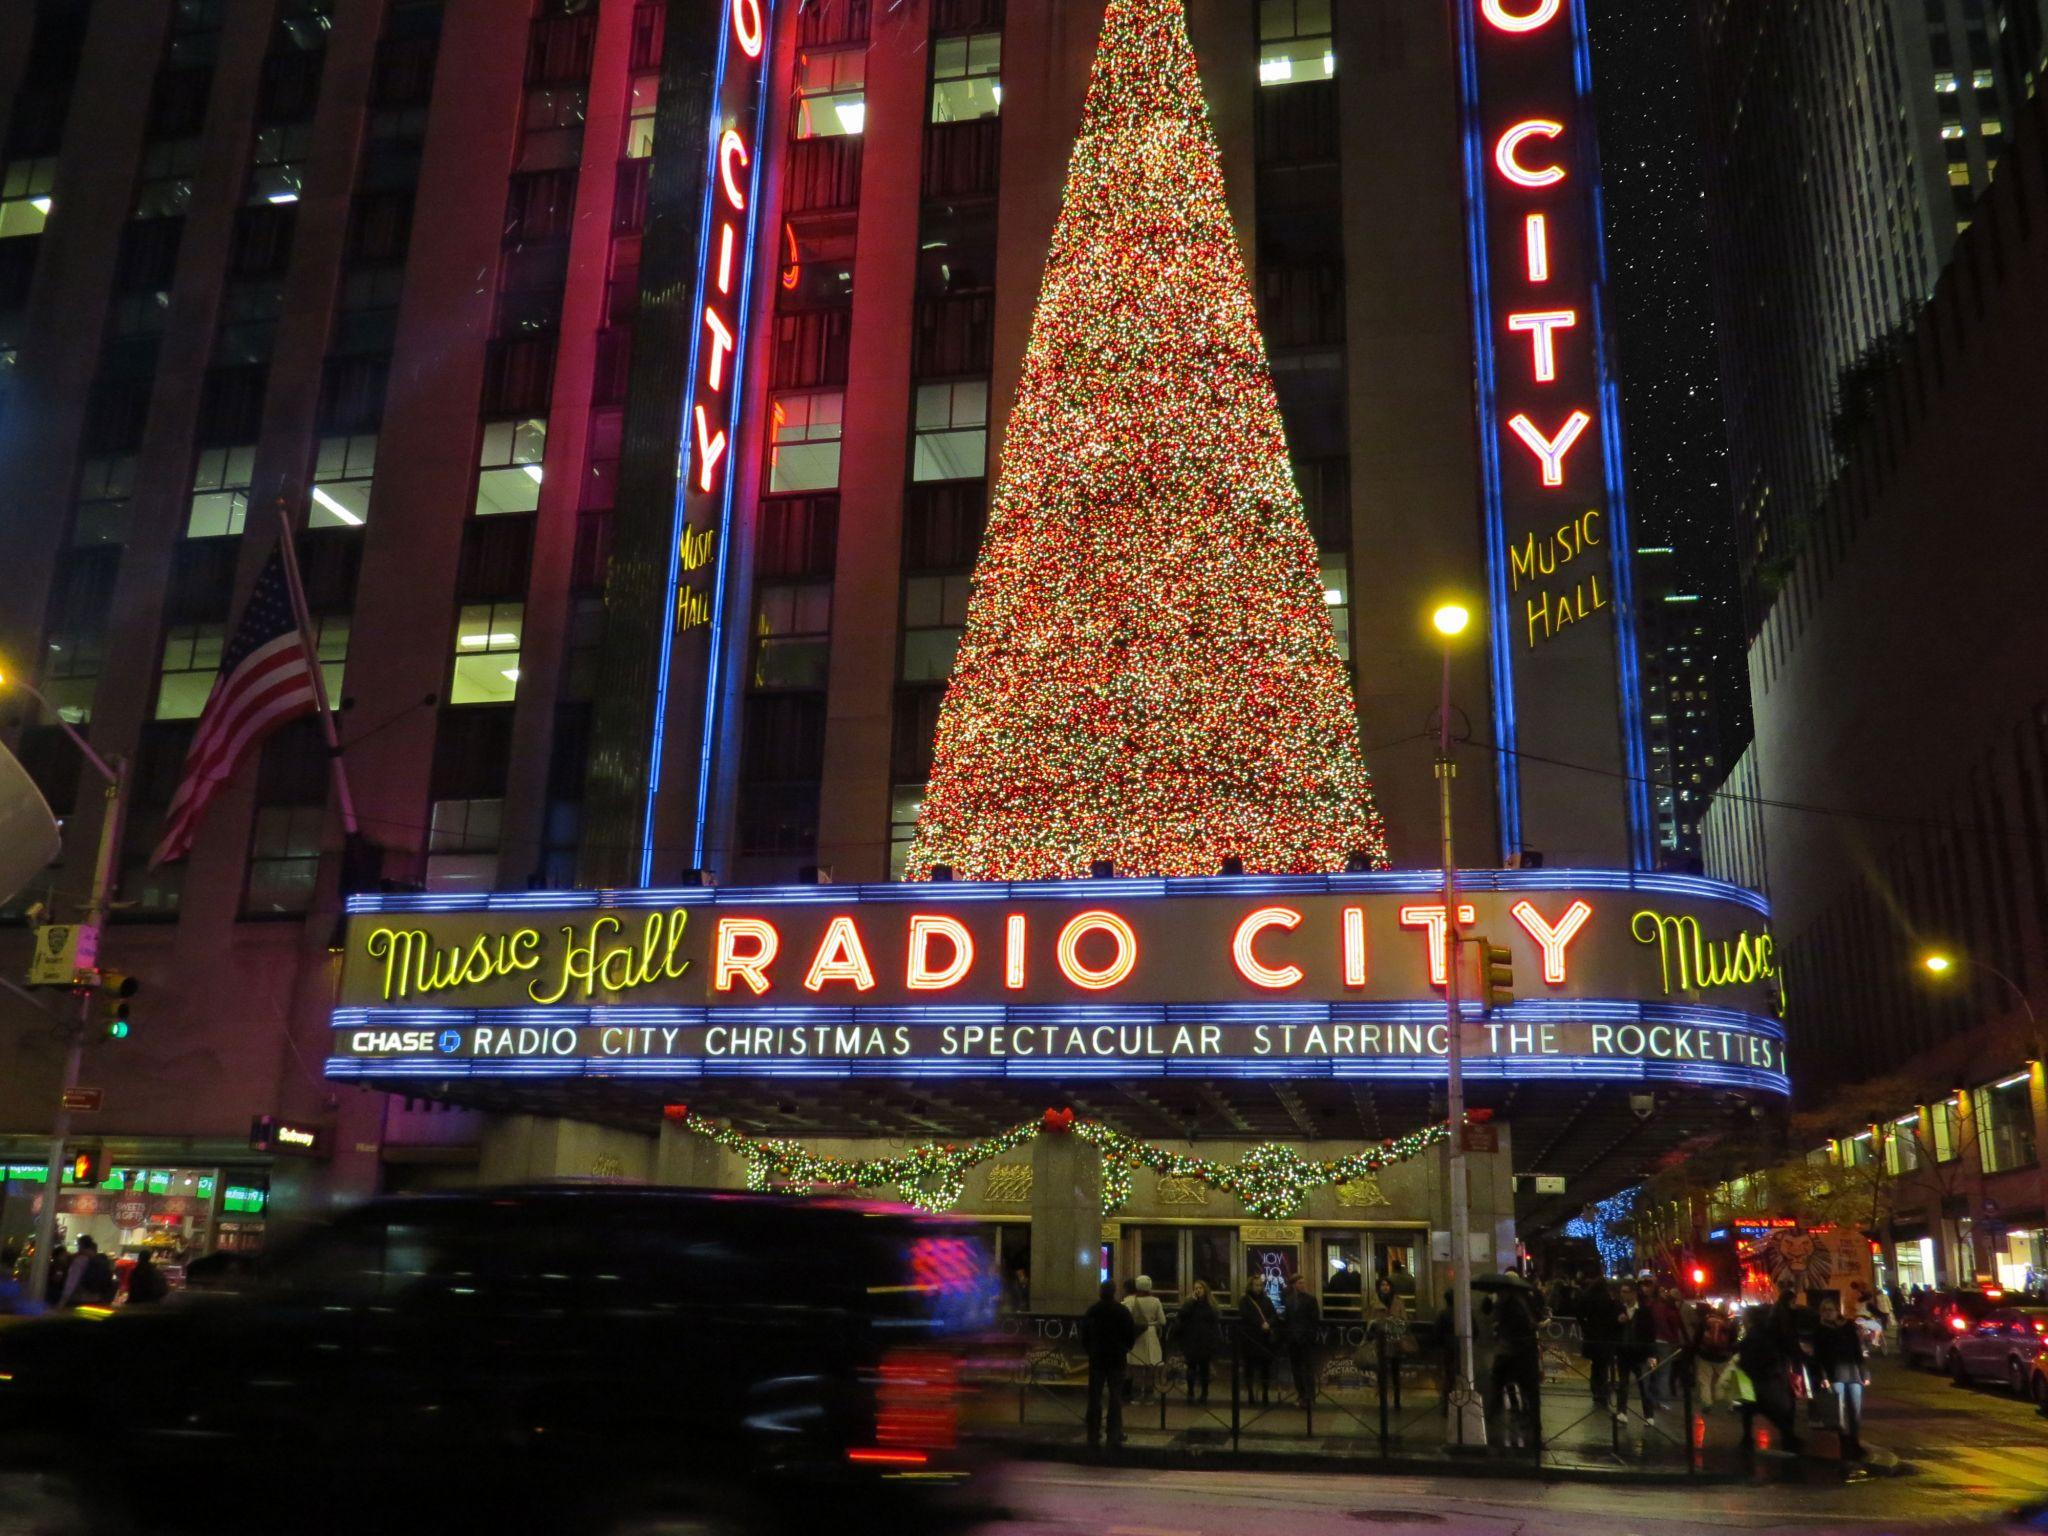 Radio City Music Hall on Broadway in NYC